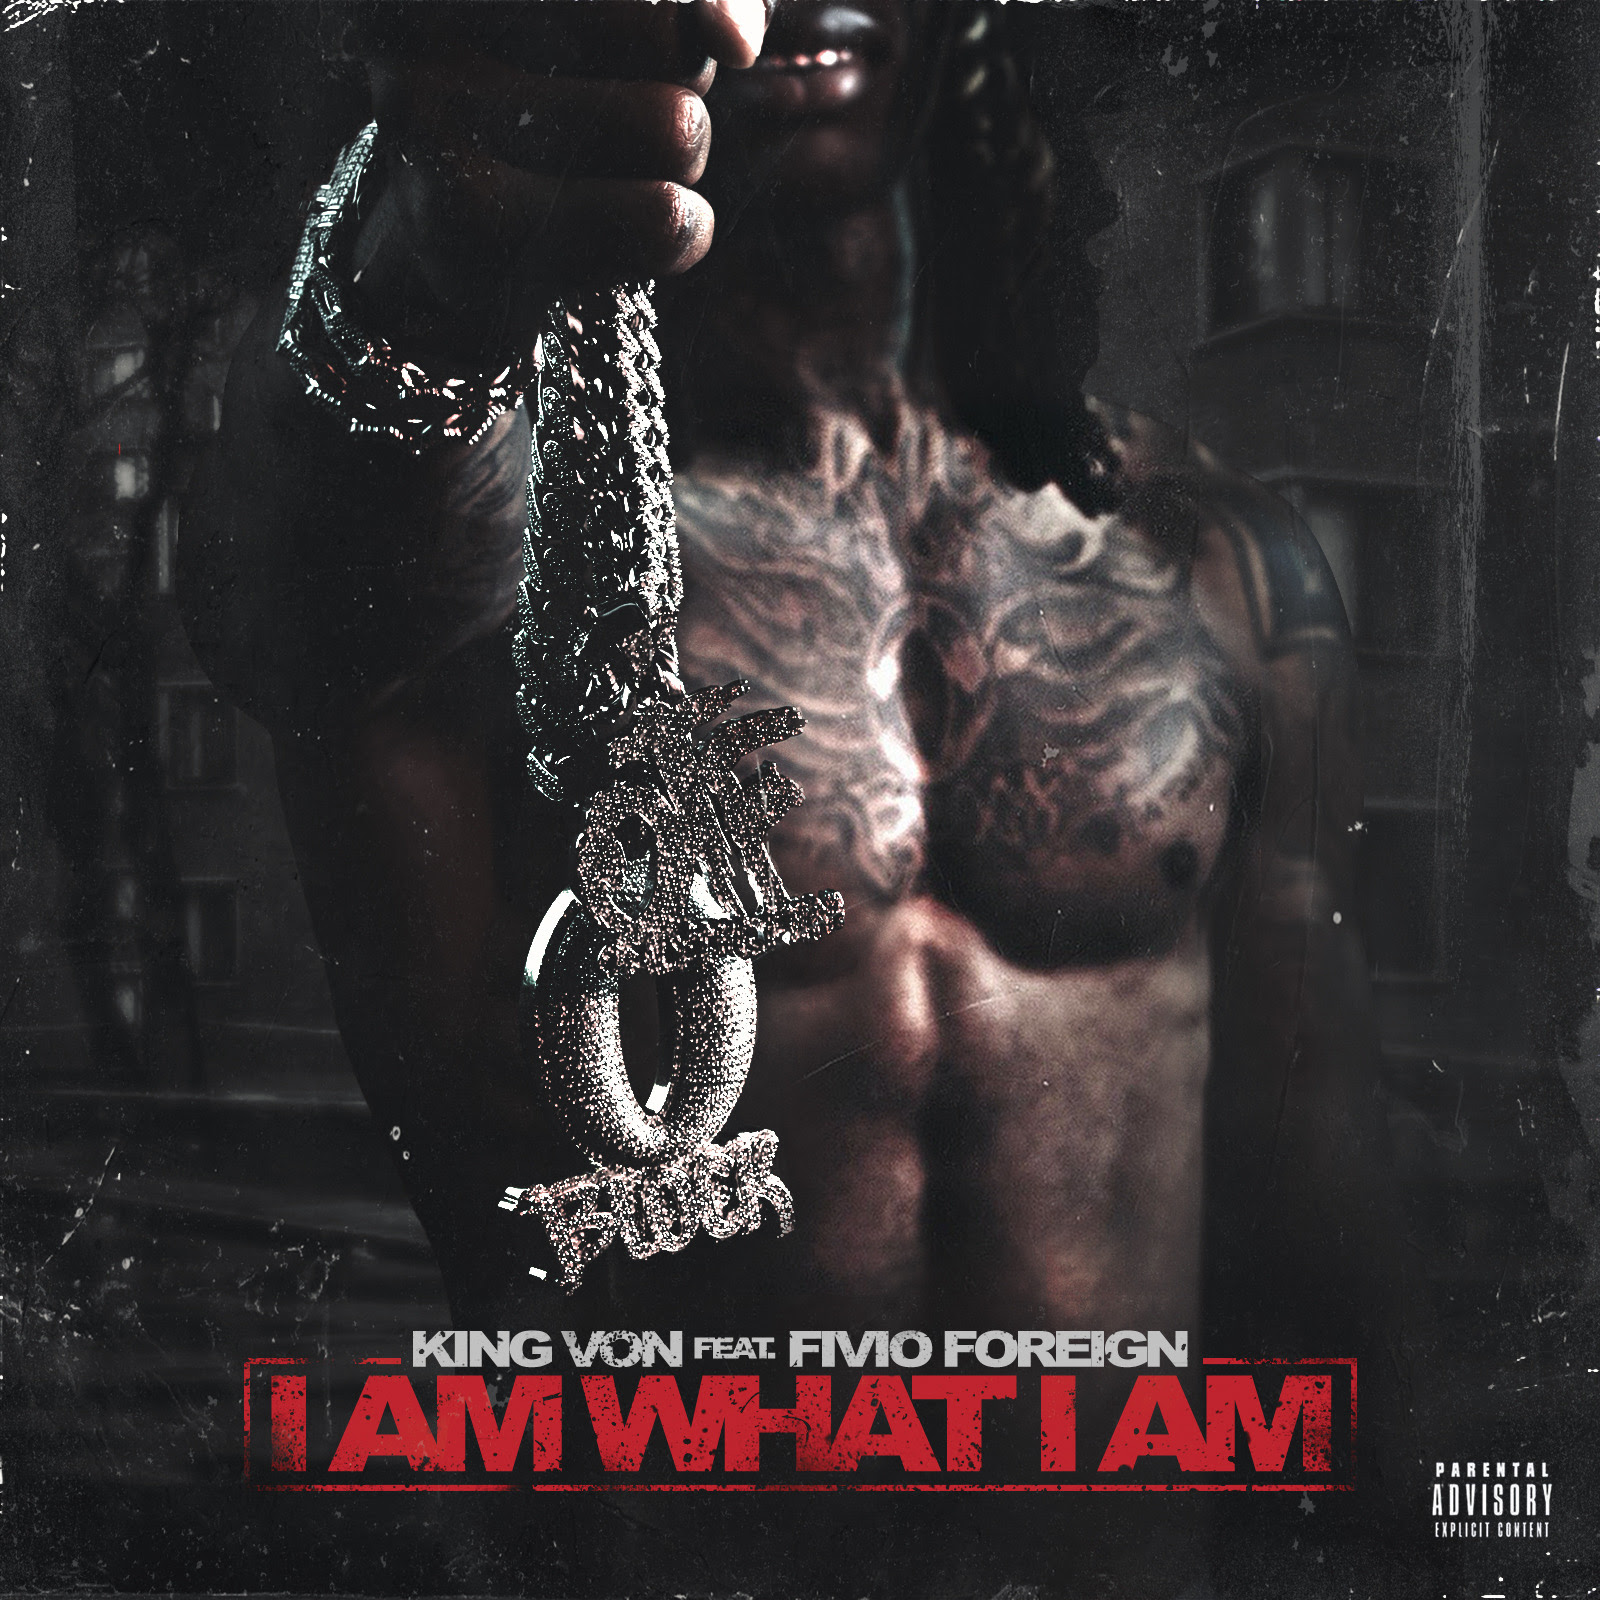 دانلود آهنگ King Von I Am What I Am ft. Fivio Foreign